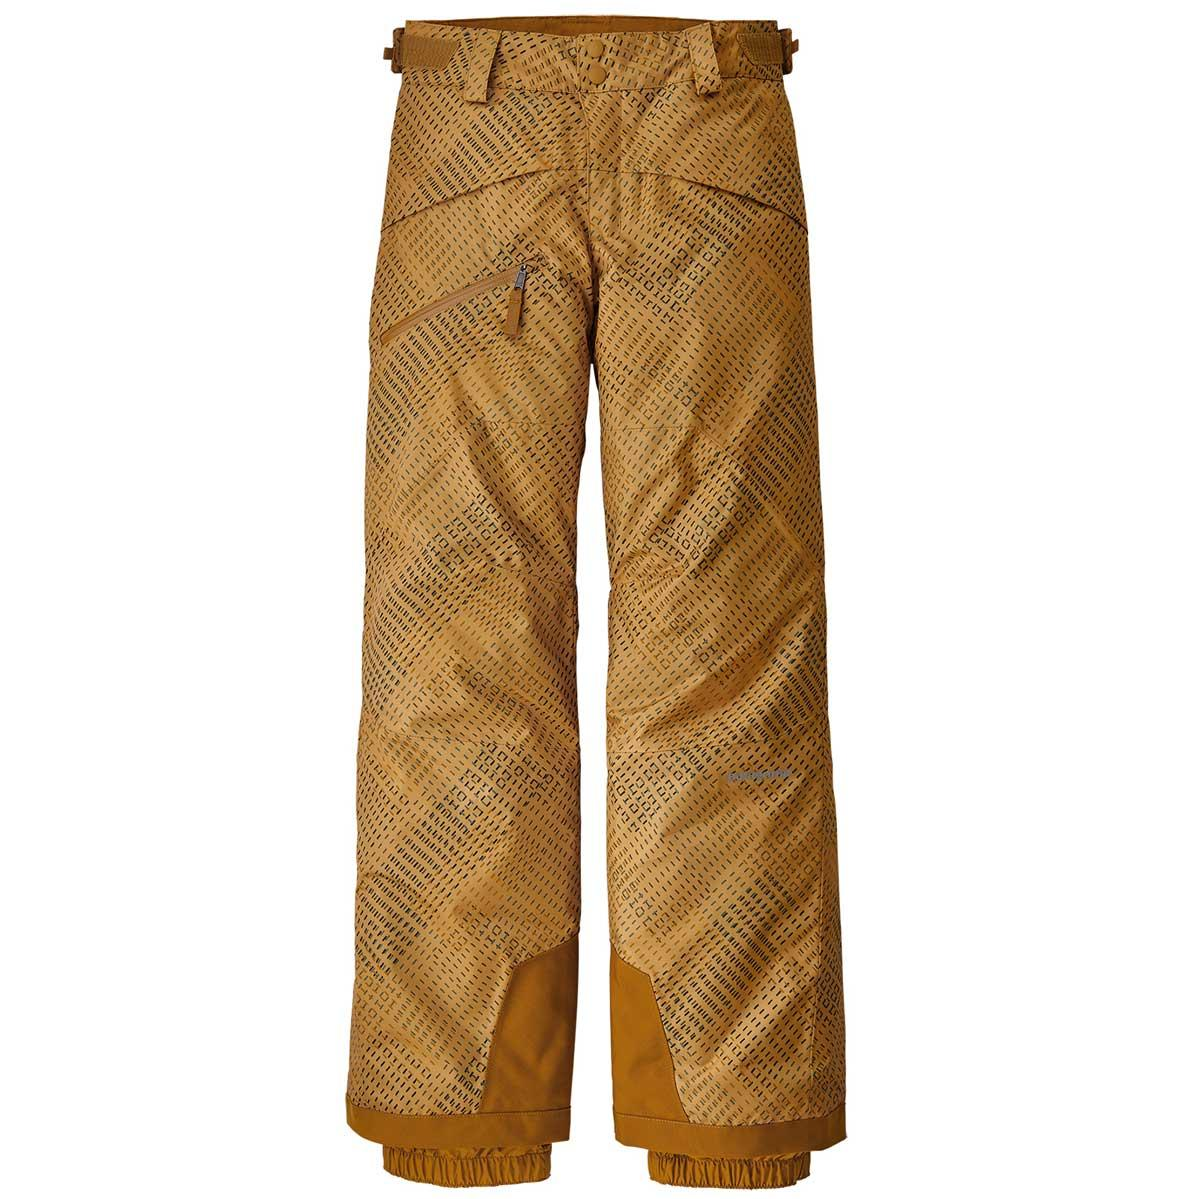 Patagonia boy's Snowshot Pants in Stitch Grid and Glyph Gold front view